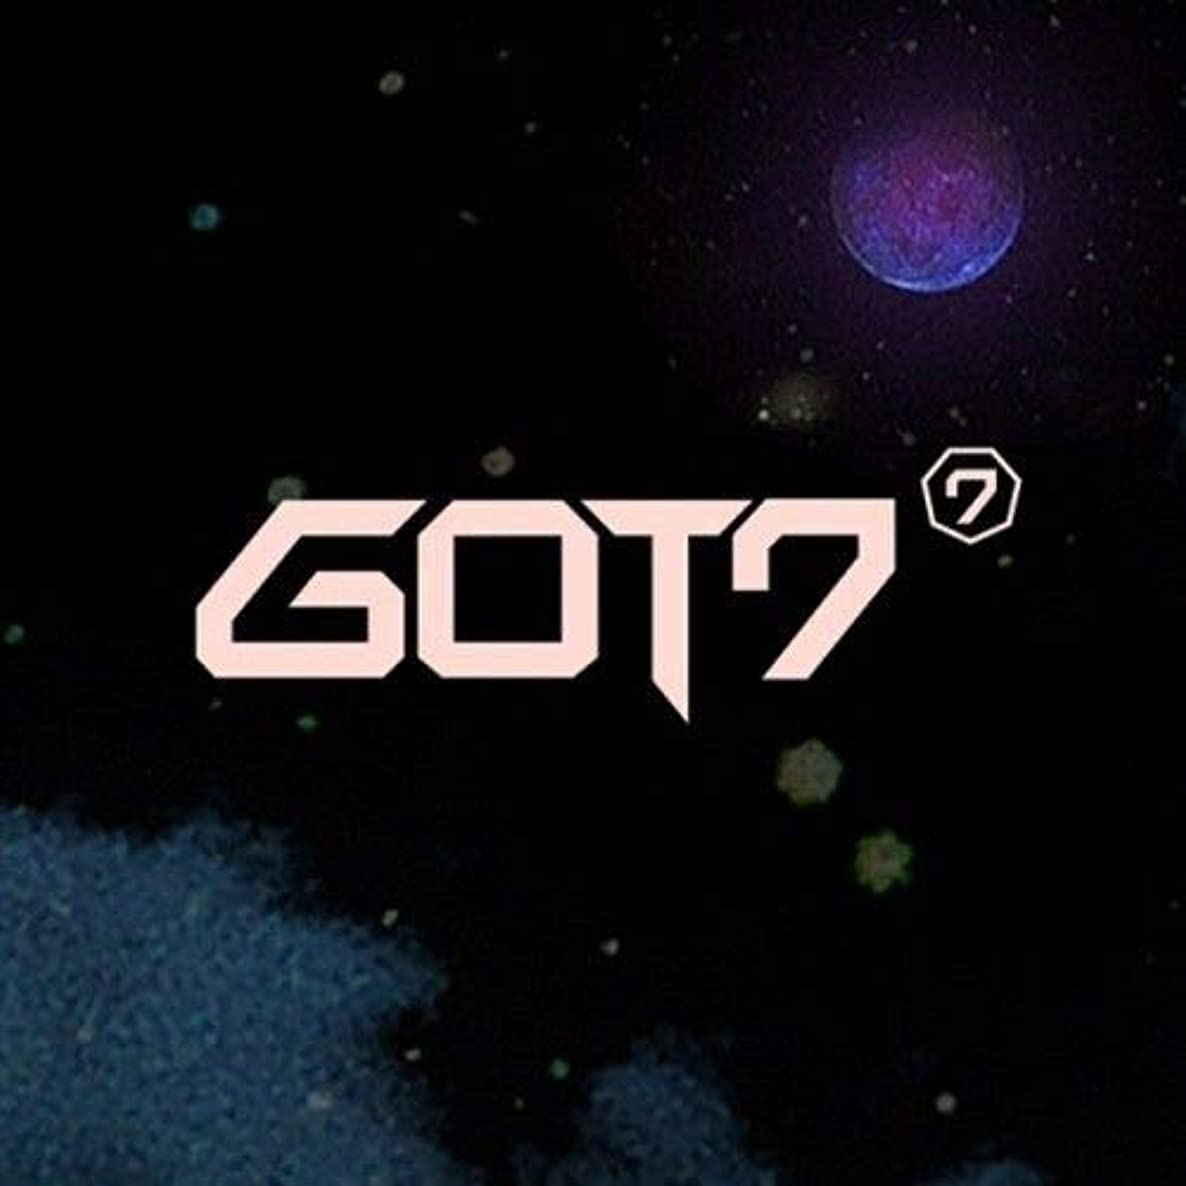 GOT7 - [Present:You&Me Edition] 3 Ver Set CD+72p PhotoBook+20p Booklet+3p PhotoCard+Pre-Order Item+Tracking